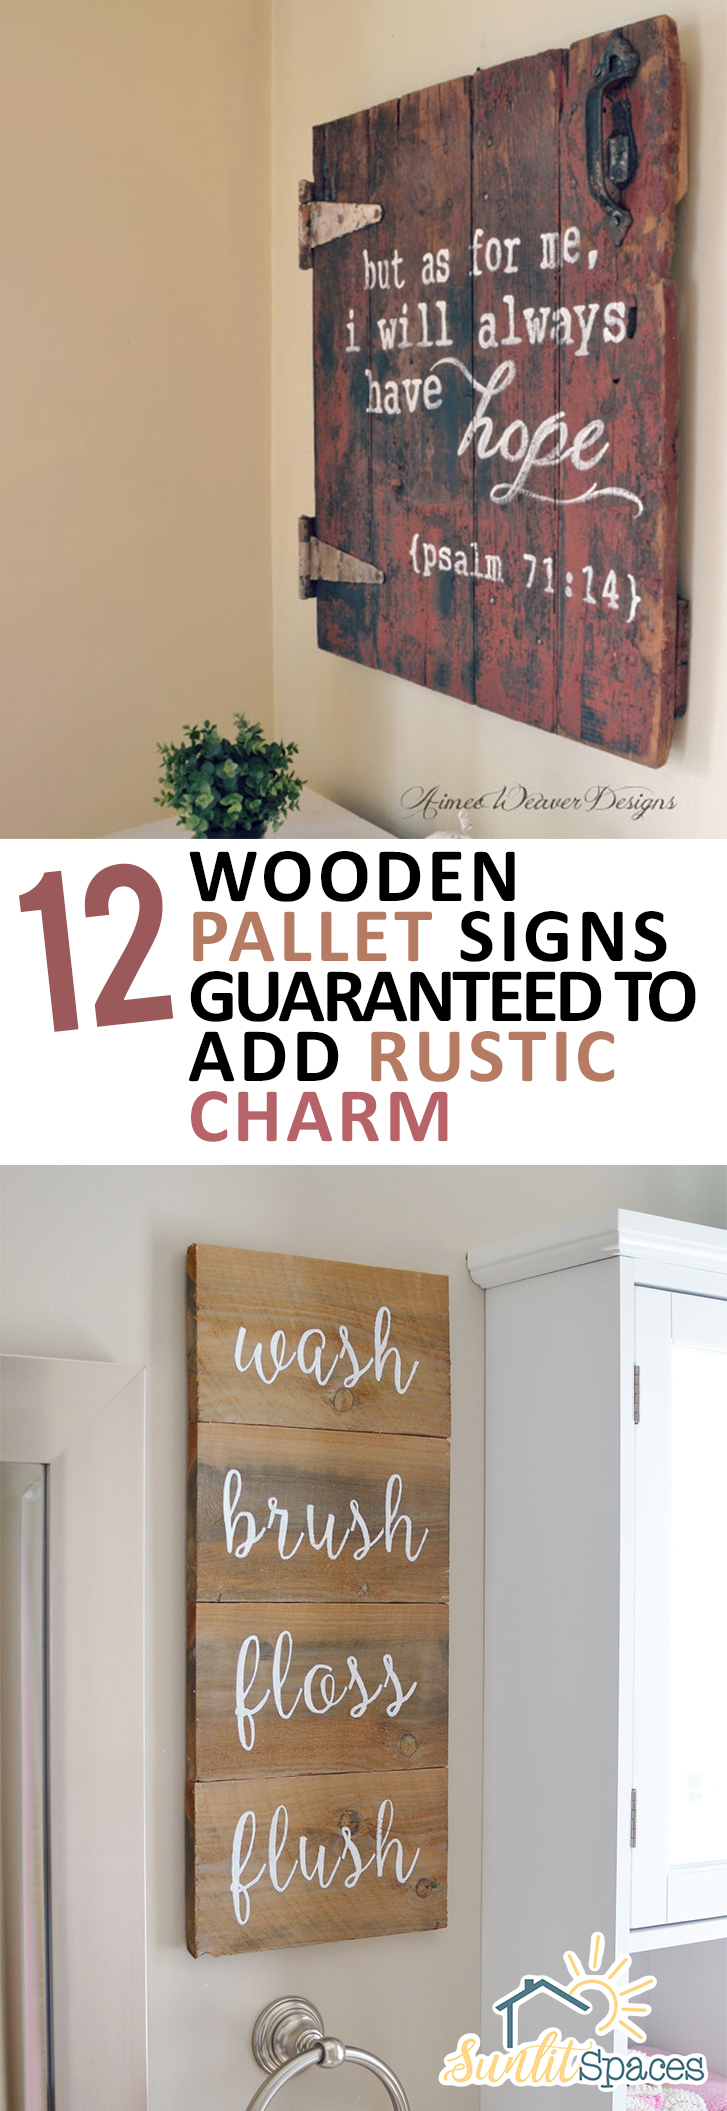 12 wooden pallet signs guaranteed to add rustic charm for Diy pallet home decor